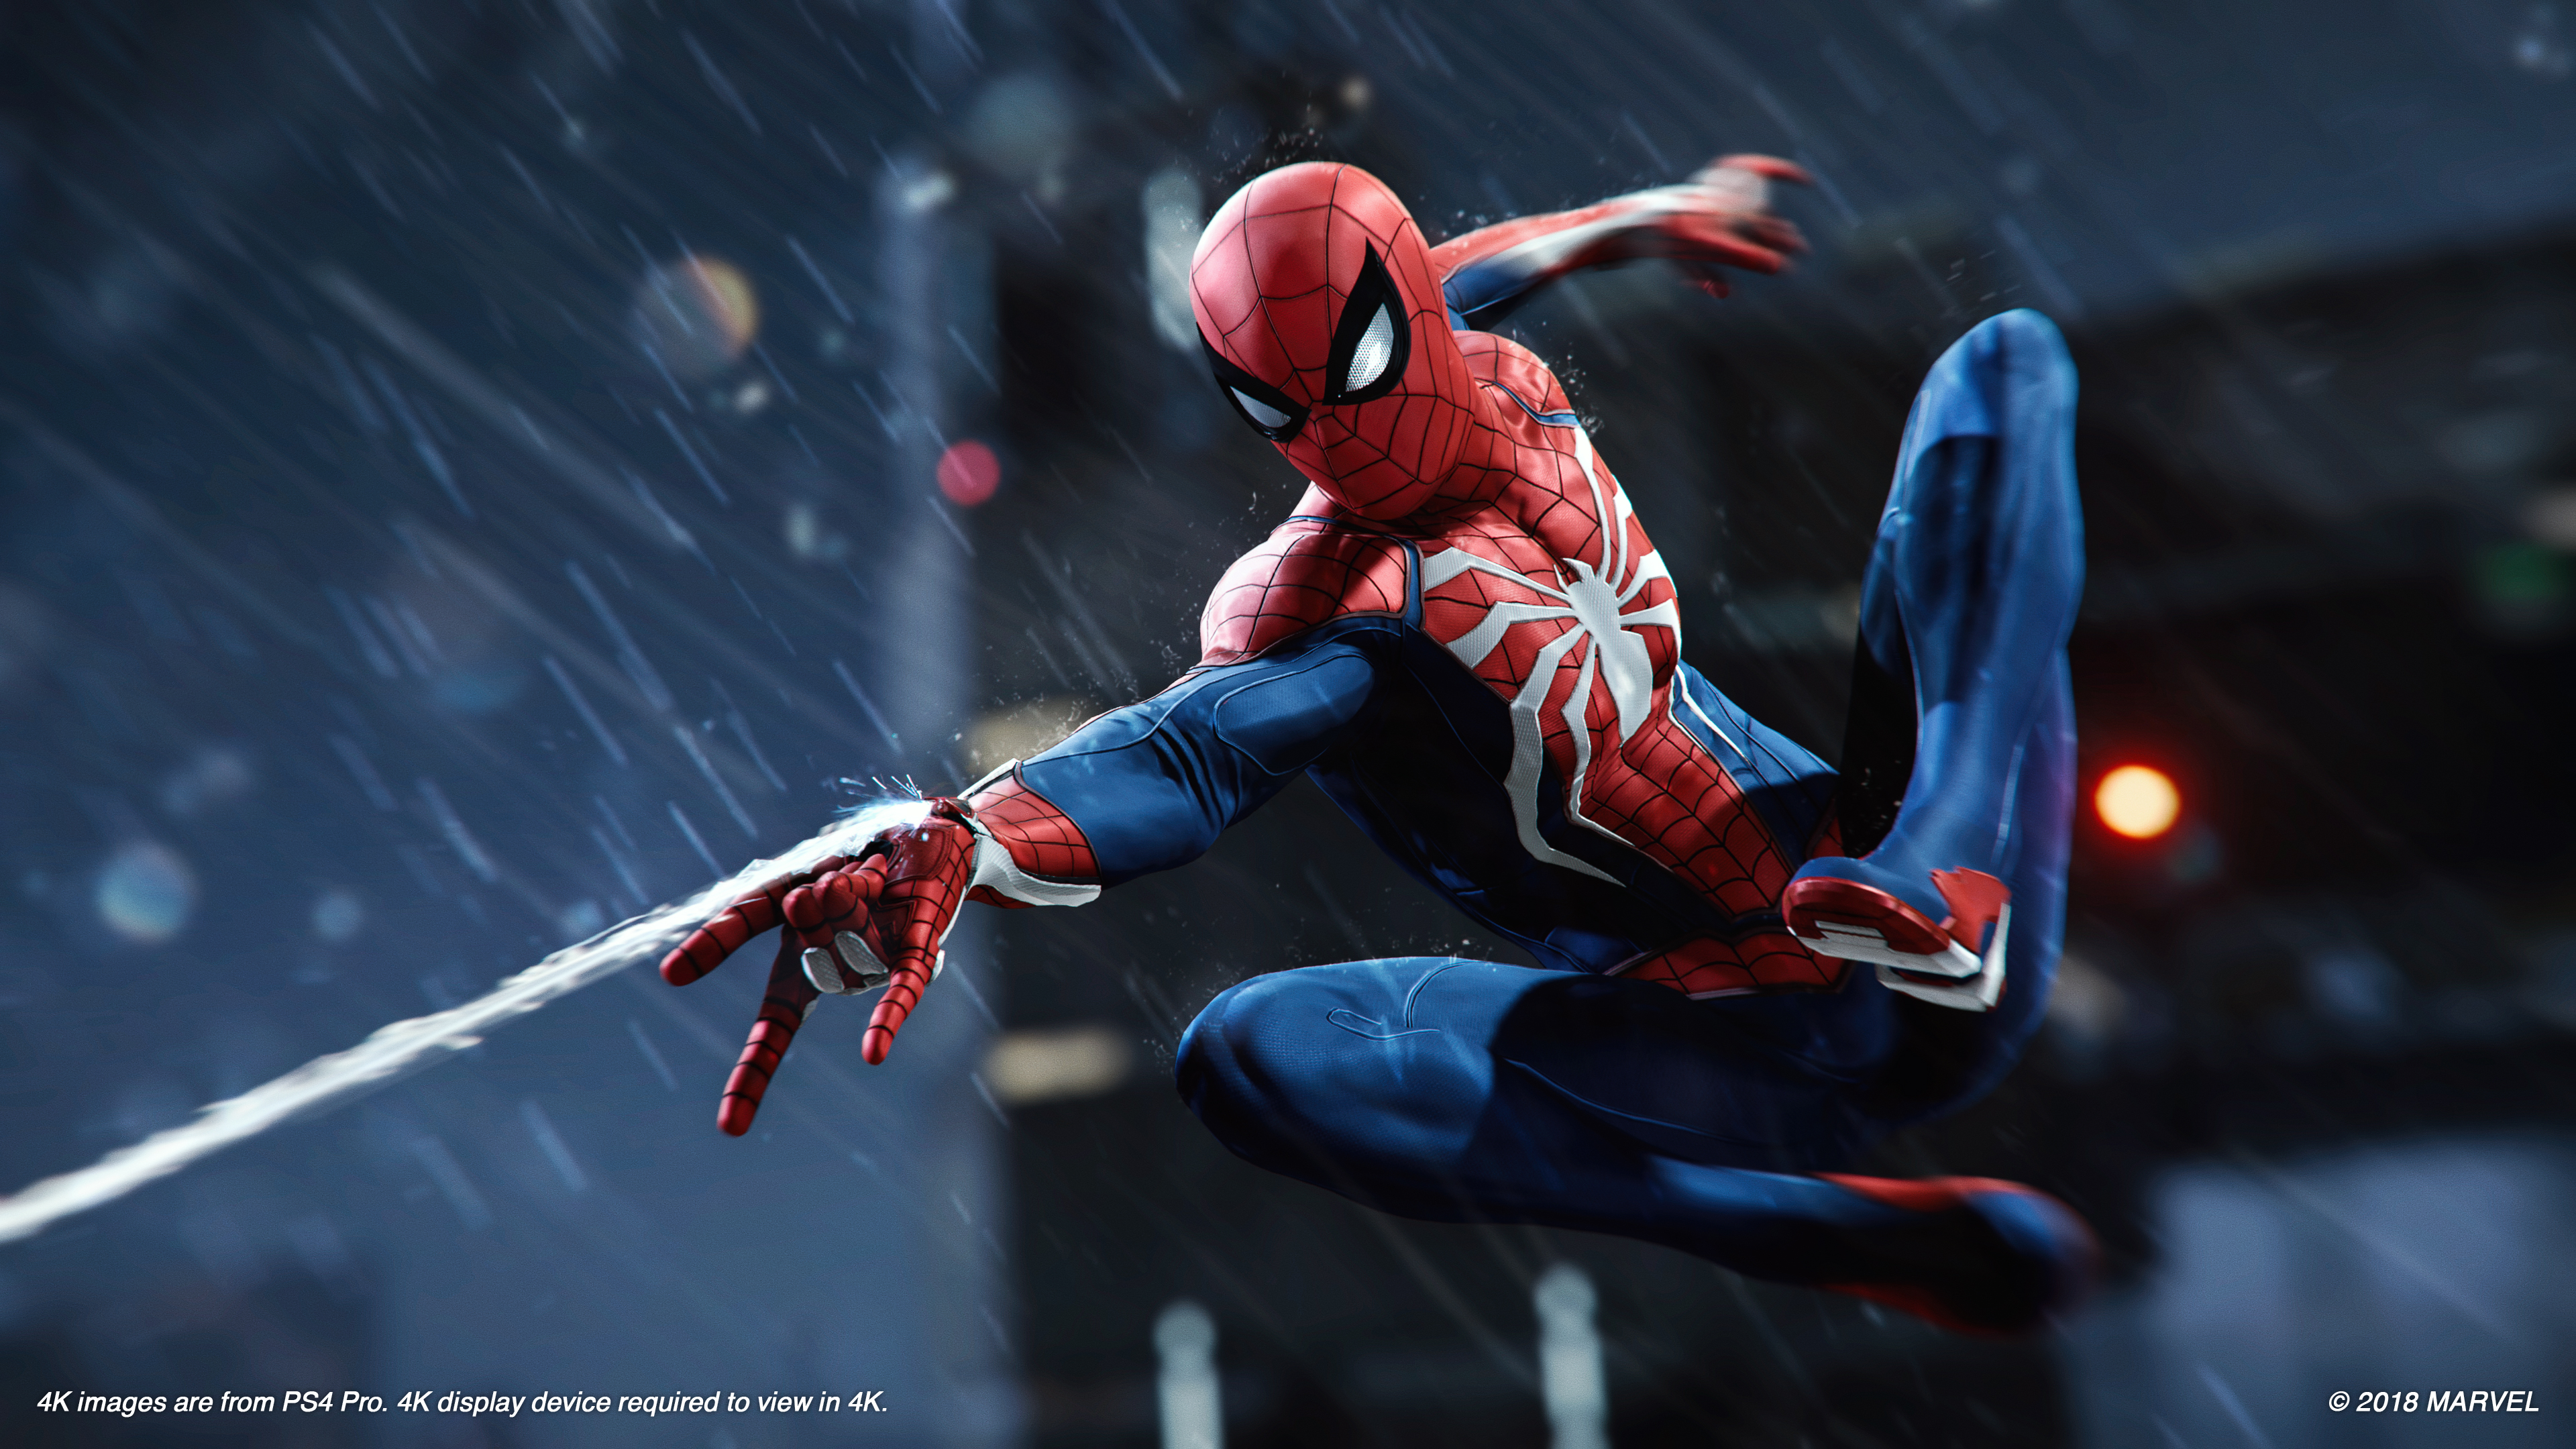 Playstation Reclaims Top Spot For Gaming Industry Ad Spend On Tv